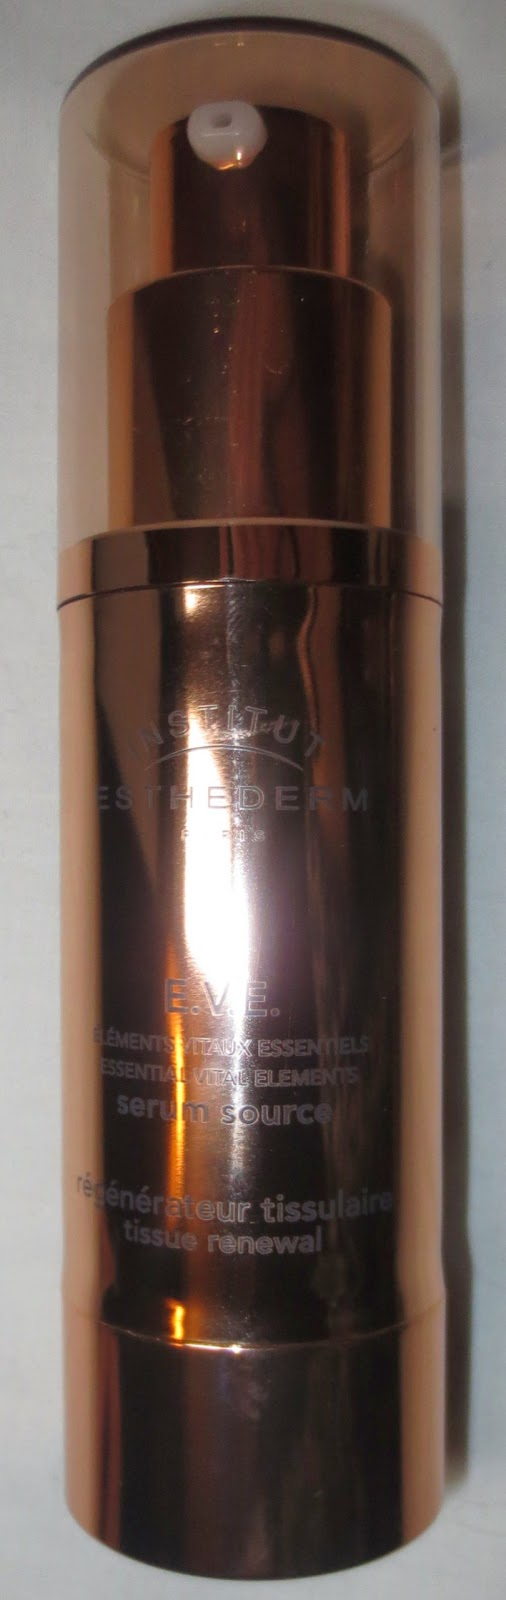 Institut Esthederm E.V.E. Serum Source